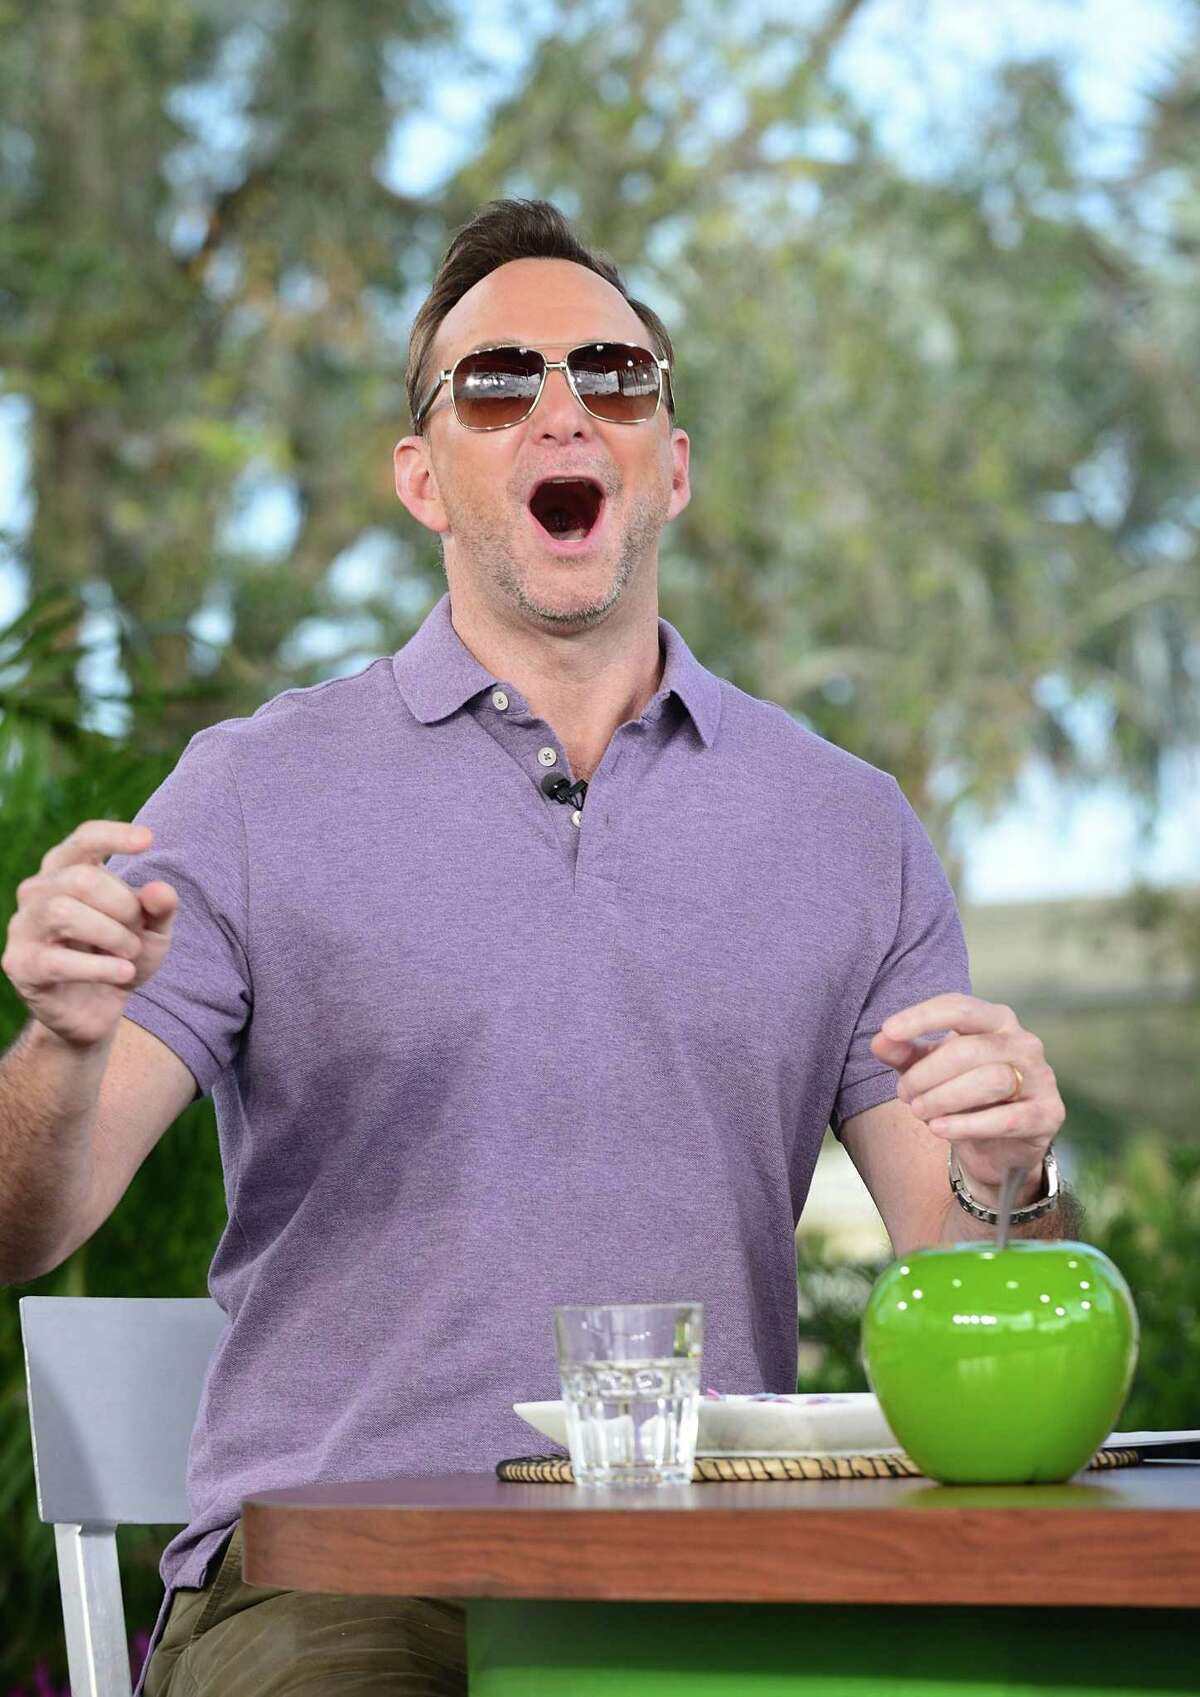 ORLANDO, FL - OCTOBER 04: 'The Chew' co-host Clinton Kelly broadcasts from the 22nd Epcot International Food & Wine Festival at Epcot Center at Walt Disney World on October 4, 2017 in Orlando, Florida. (Photo by Gerardo Mora/Getty Images)